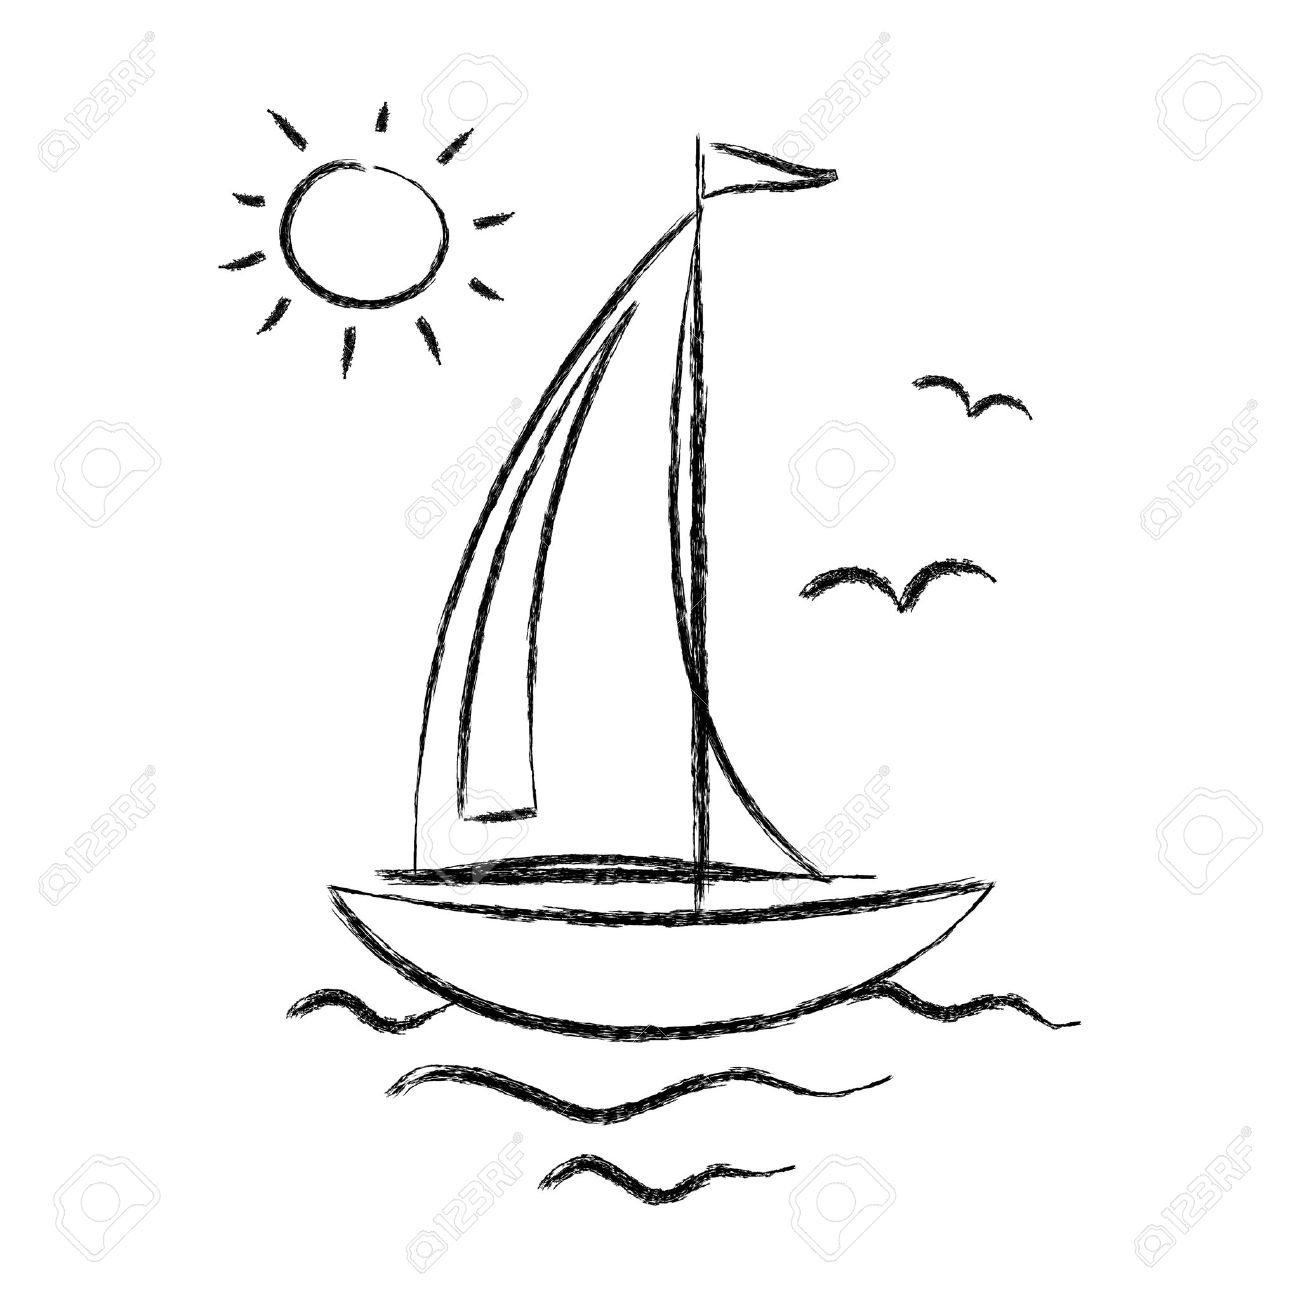 35 Awesome Sailing Boat Cartoon Images Sailboat Drawing Boat